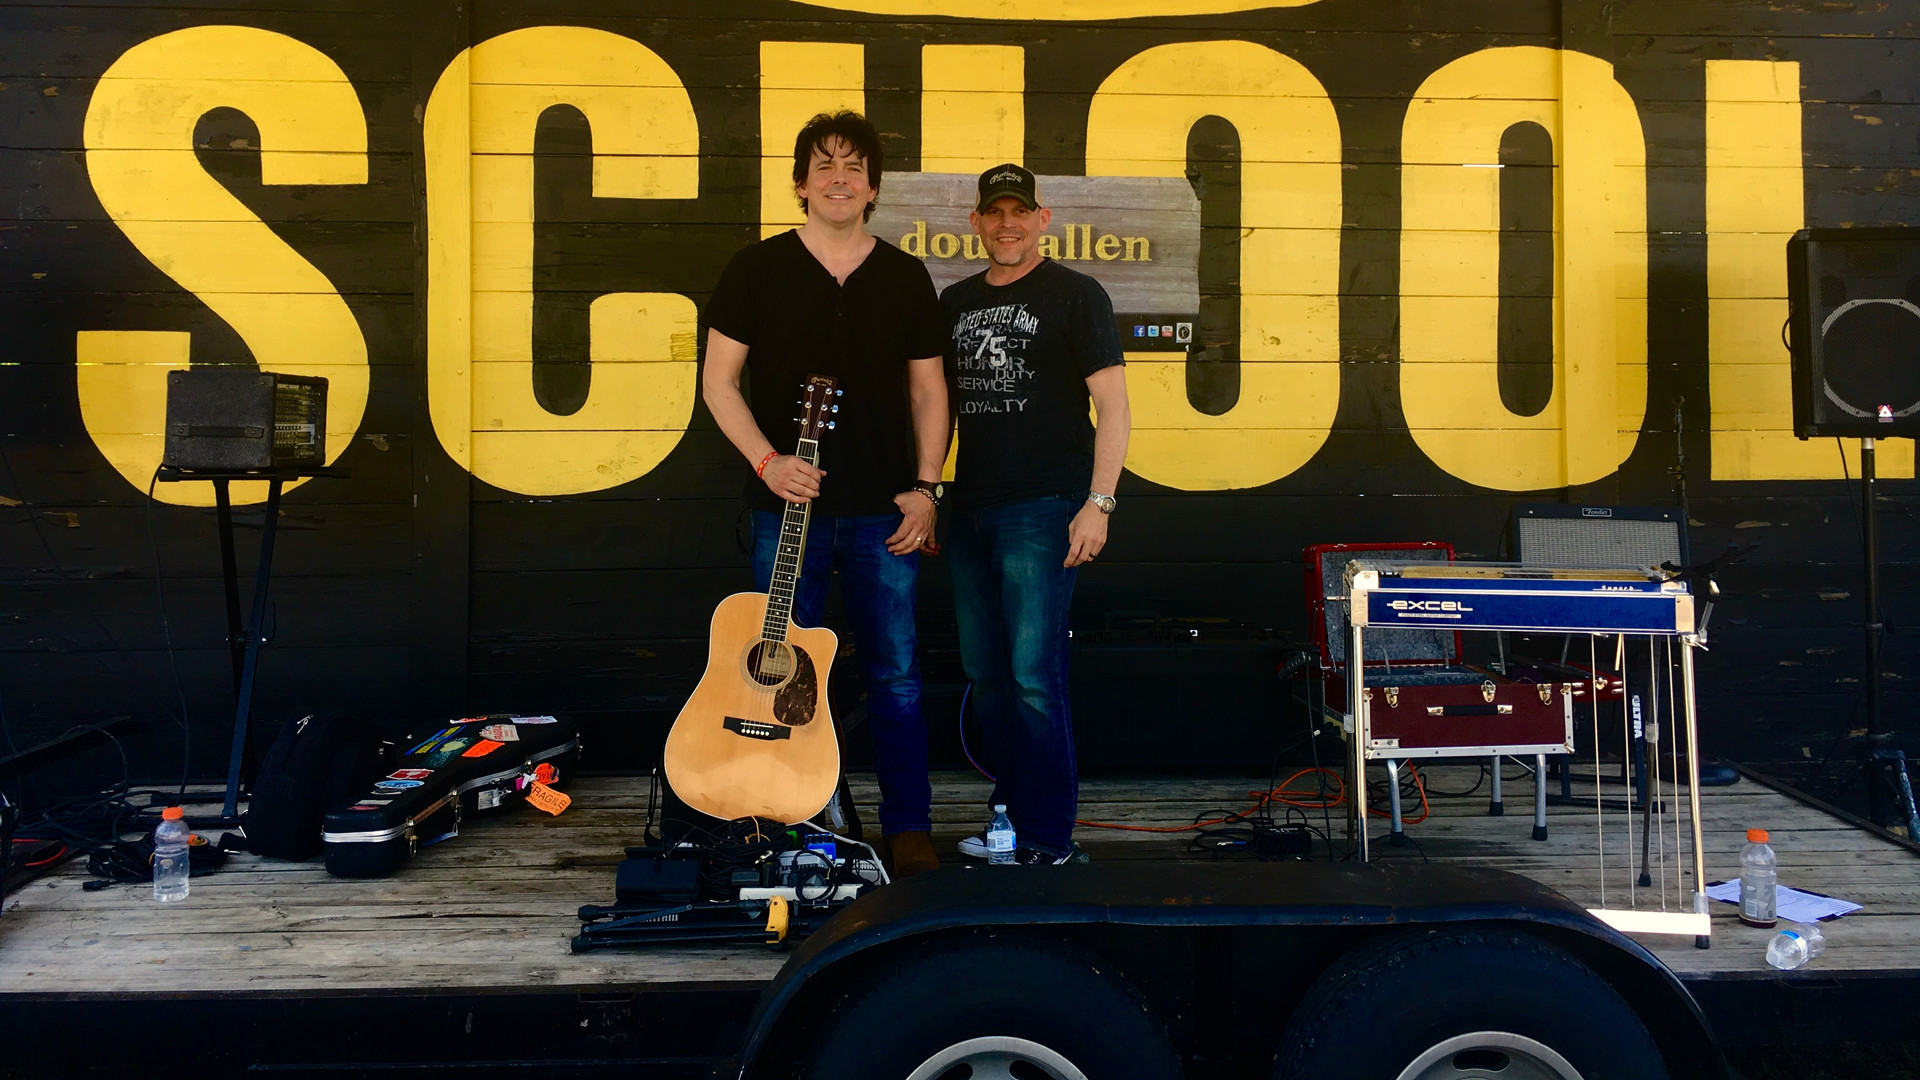 Supporting the troops with Mark Huhta (Pedal Steel) 101st Airborne Division